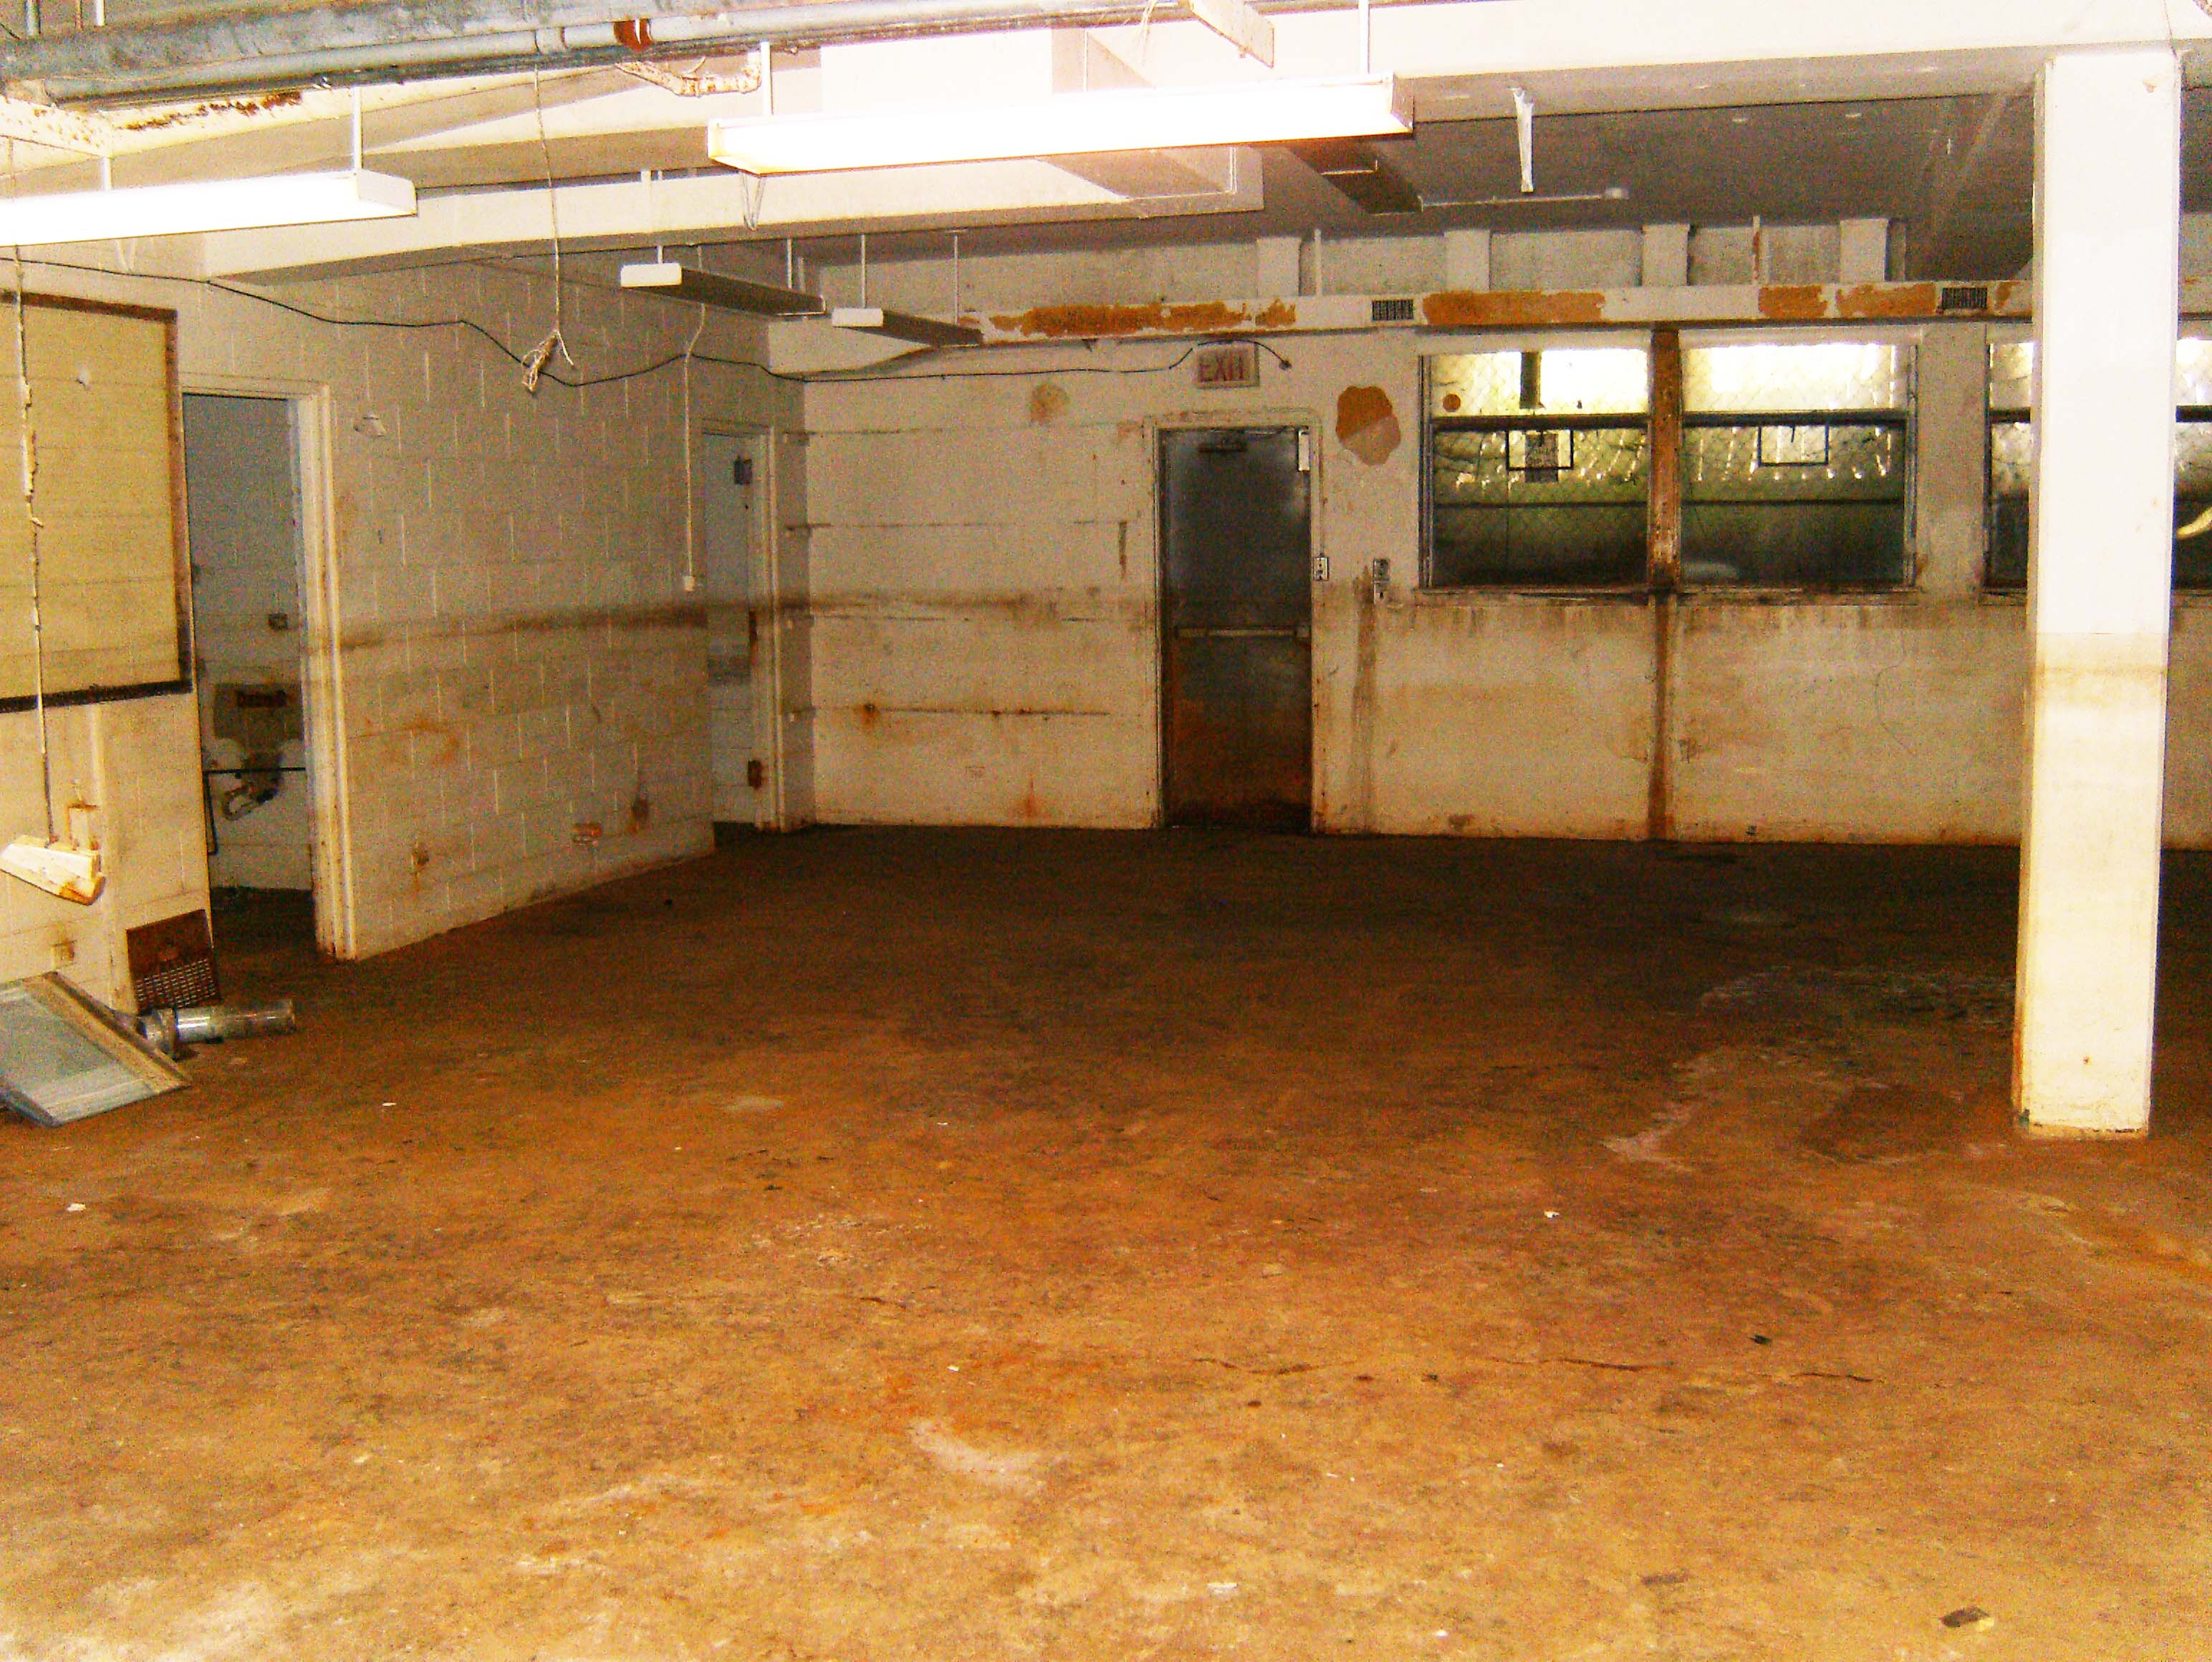 The basement floor that was flooded